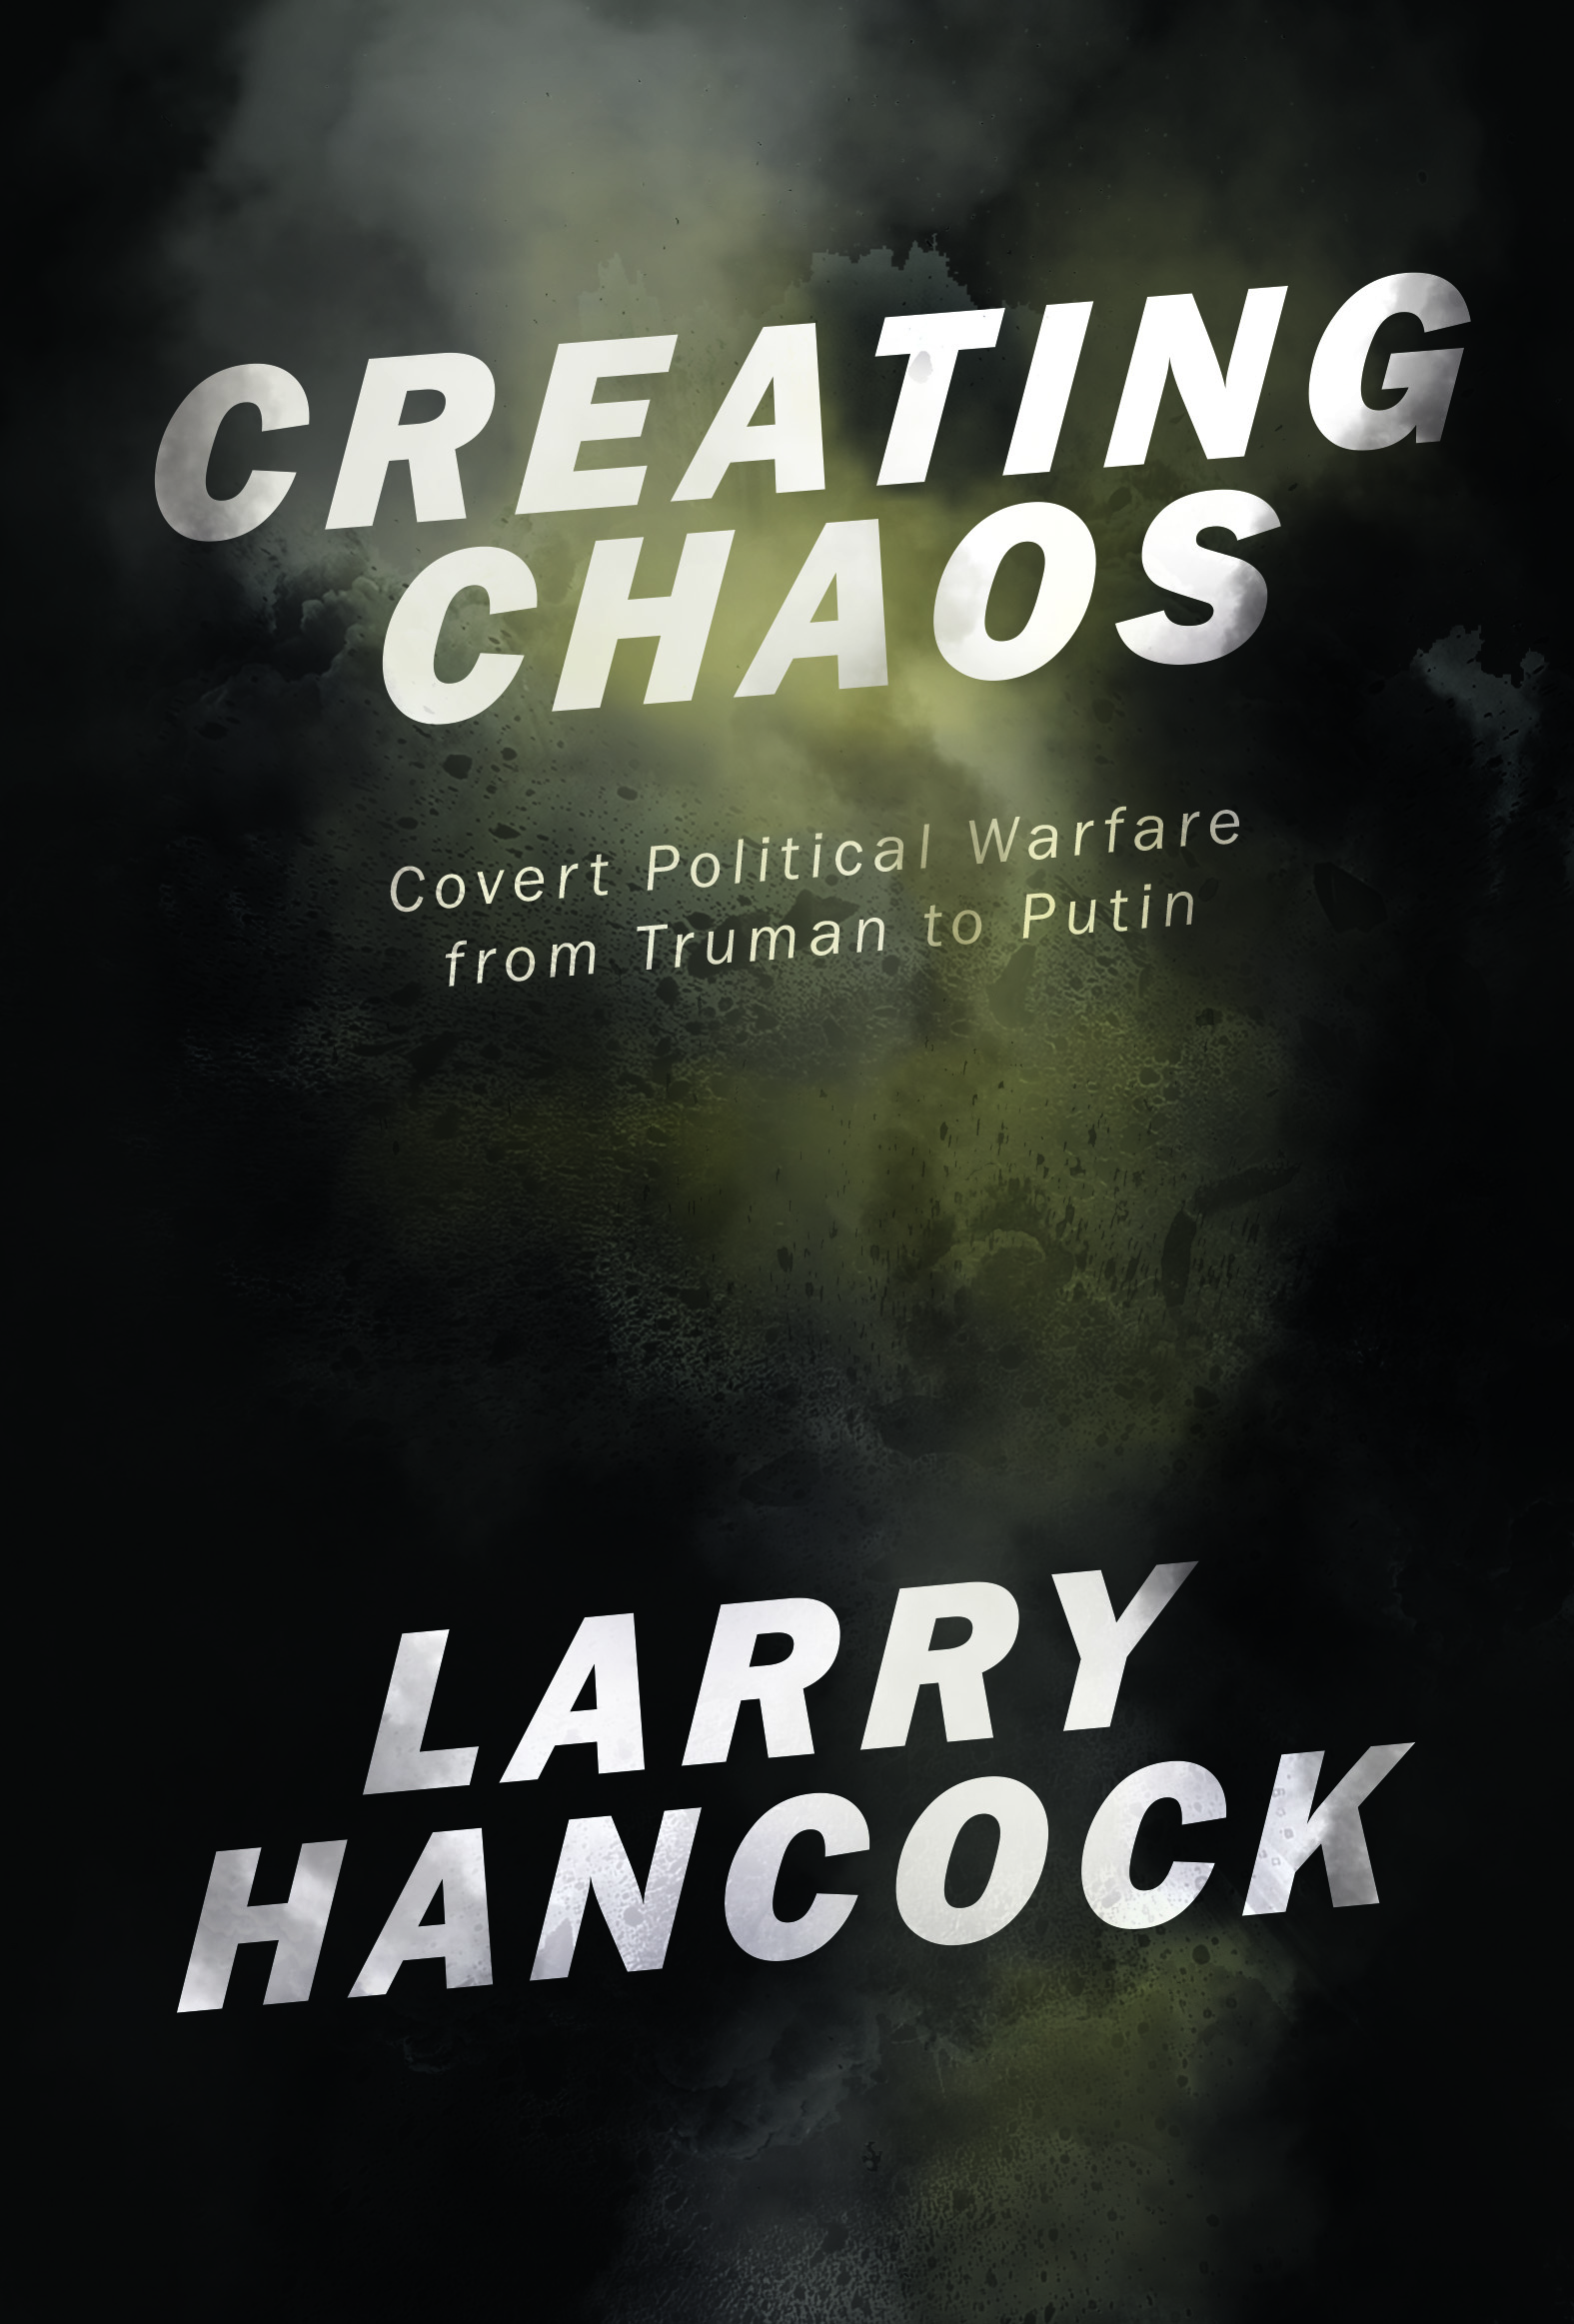 Creating Chaos : Covert Political Warfare from Truman to Putin by Larry Hancock | Seagull Books | OR Books